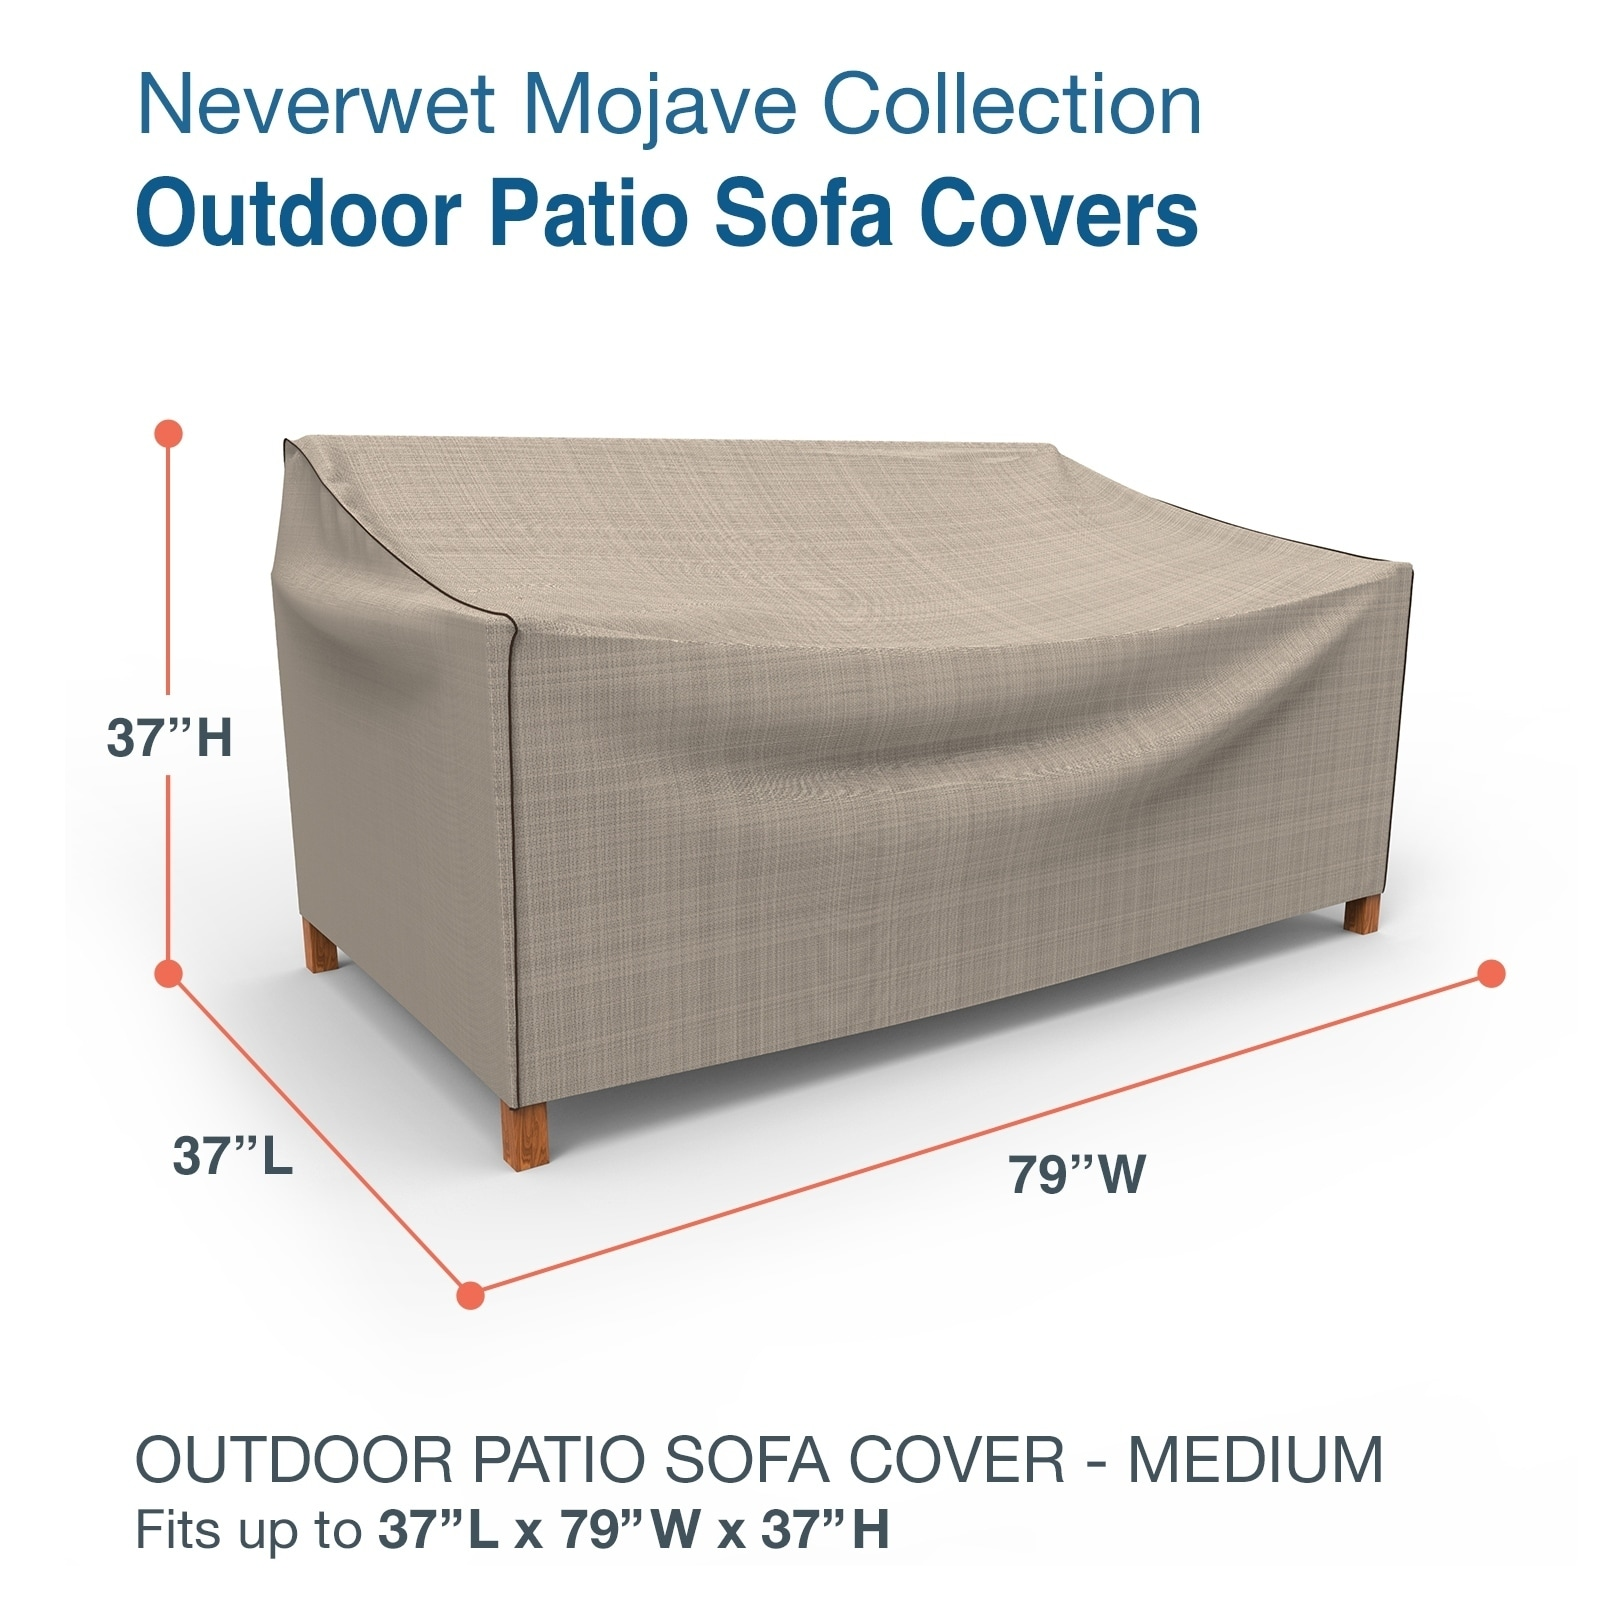 budge waterproof outdoor patio sofa cover neverwet mojave black ivory multiple sizes